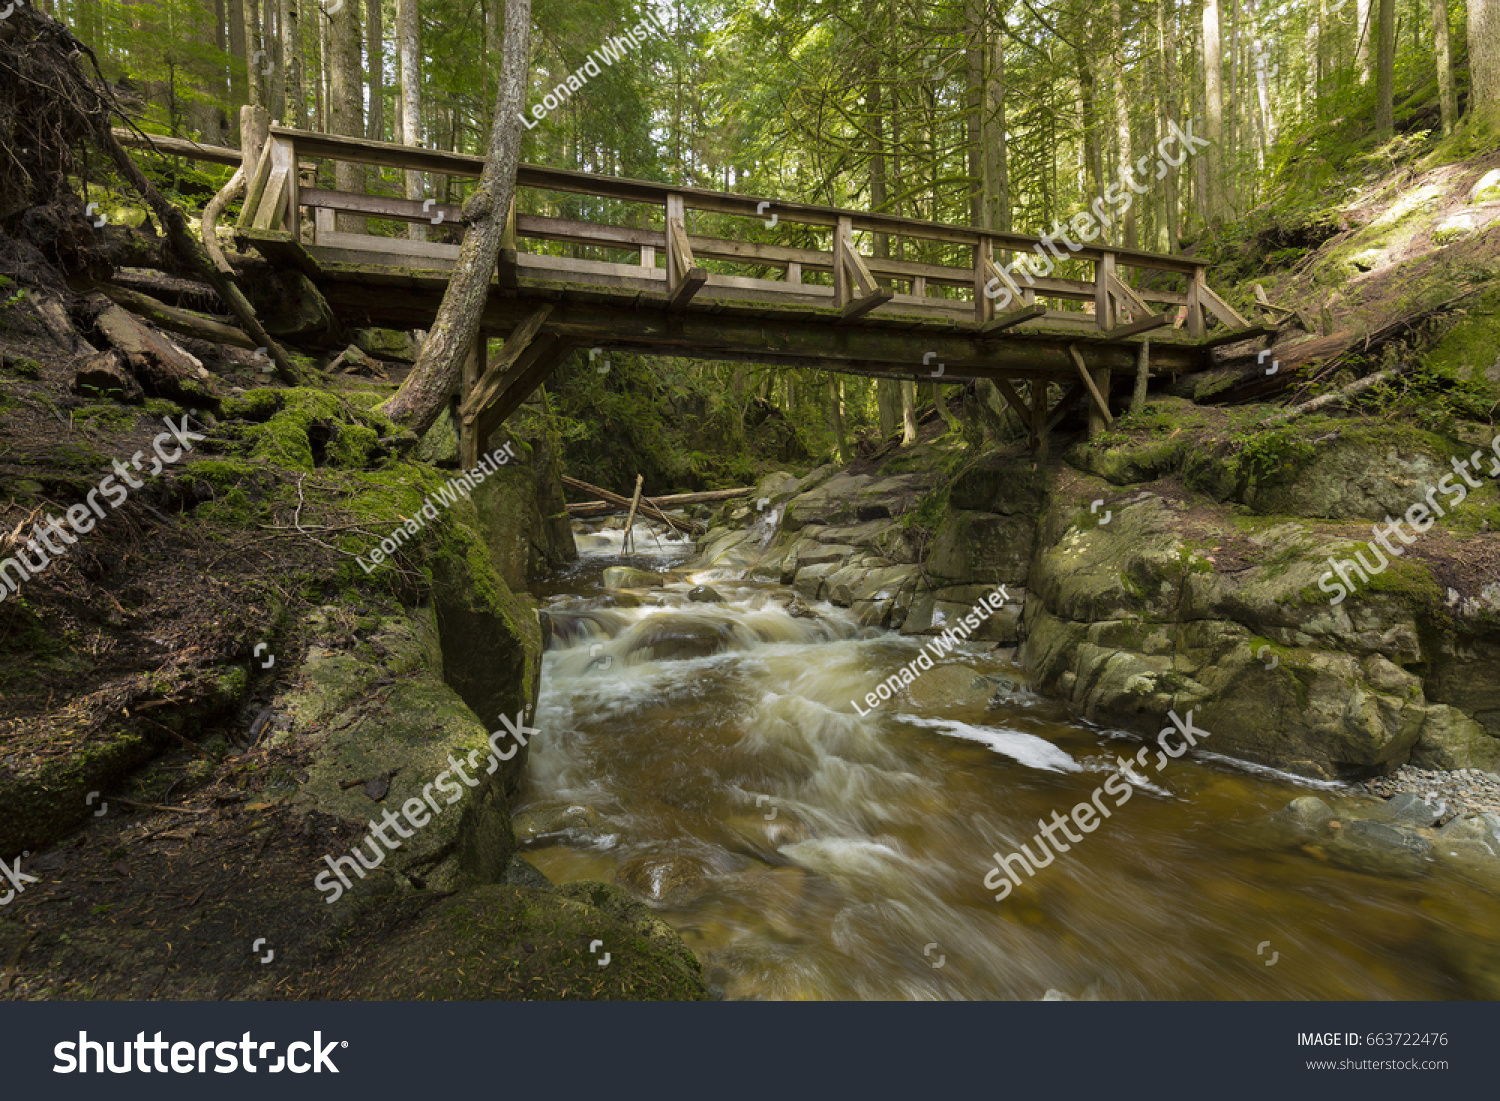 stock-photo-west-vancouver-bc-canada-woo